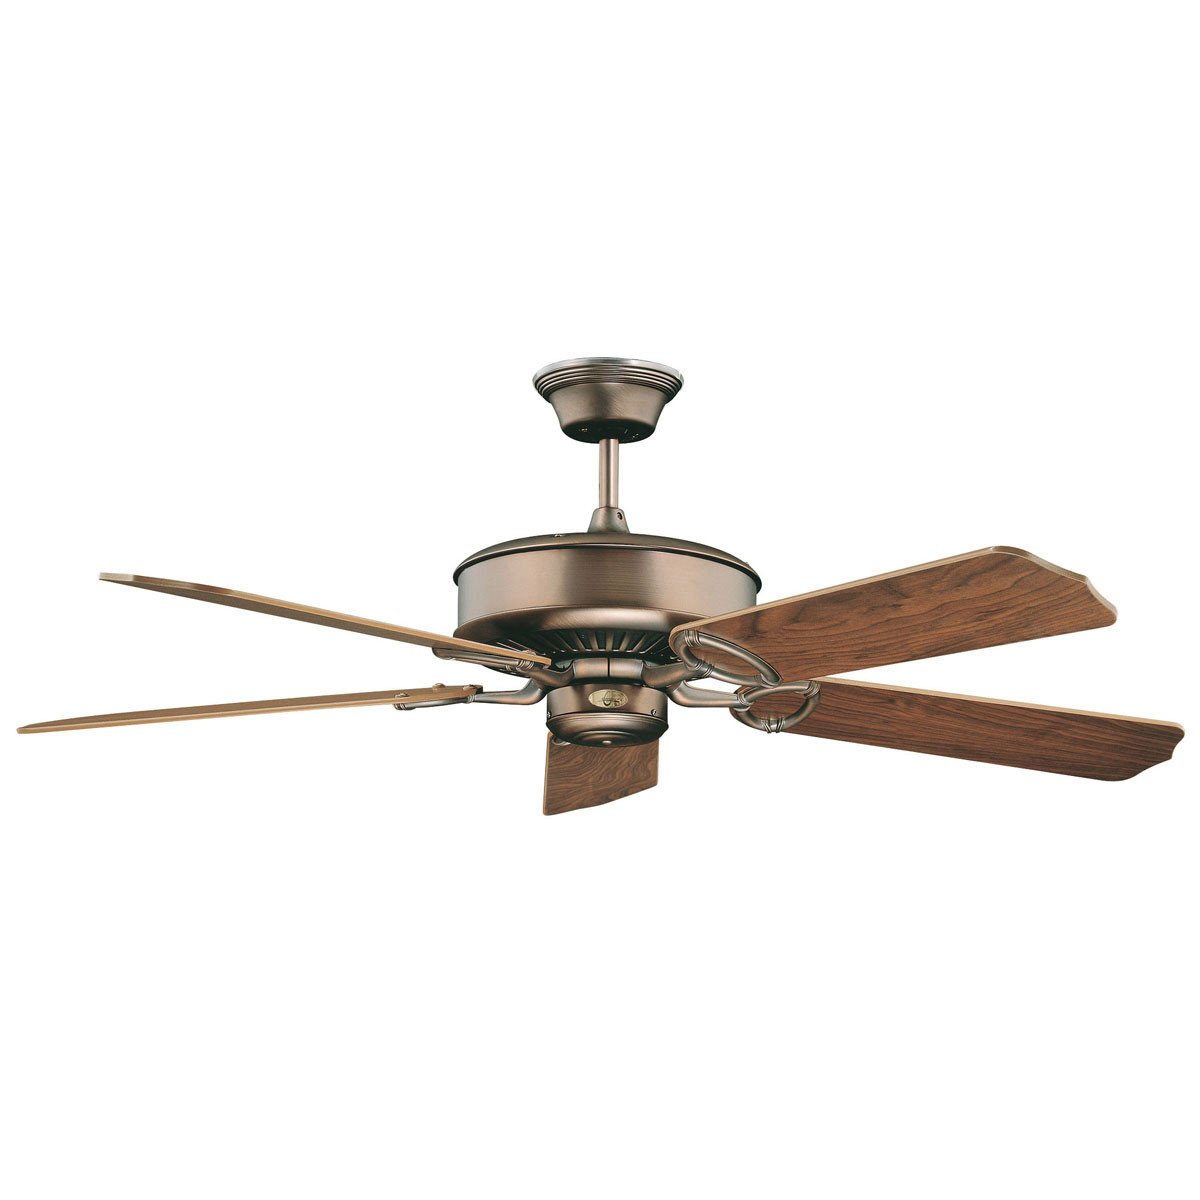 "Concord Fans 52"" Madison Energy Saver Oil Brushed Brass Modern Ceiling Fan"